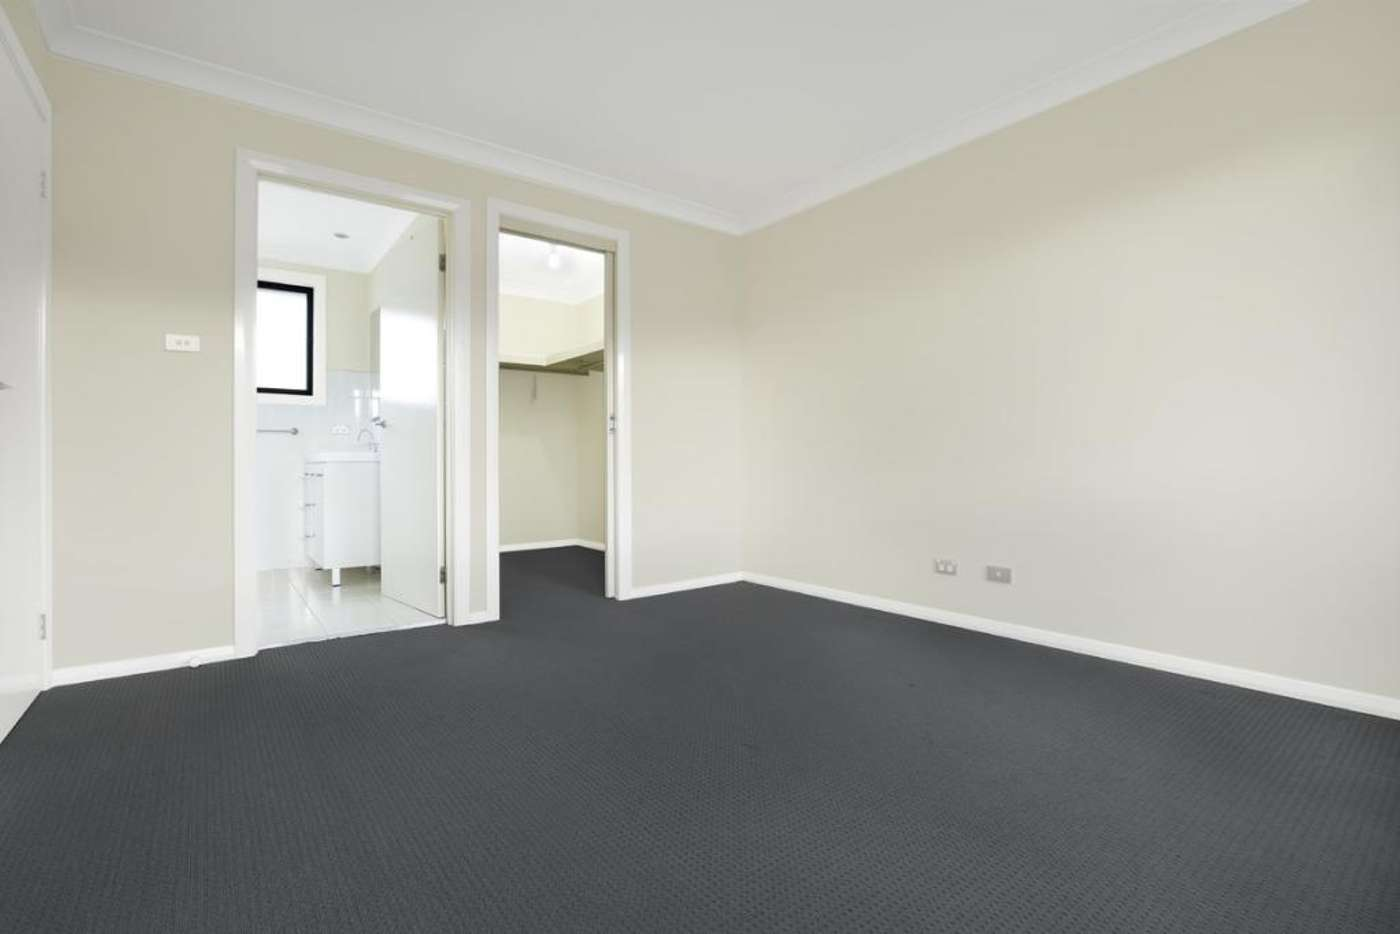 Fifth view of Homely townhouse listing, 6/25 Highway Avenue, West Wollongong NSW 2500